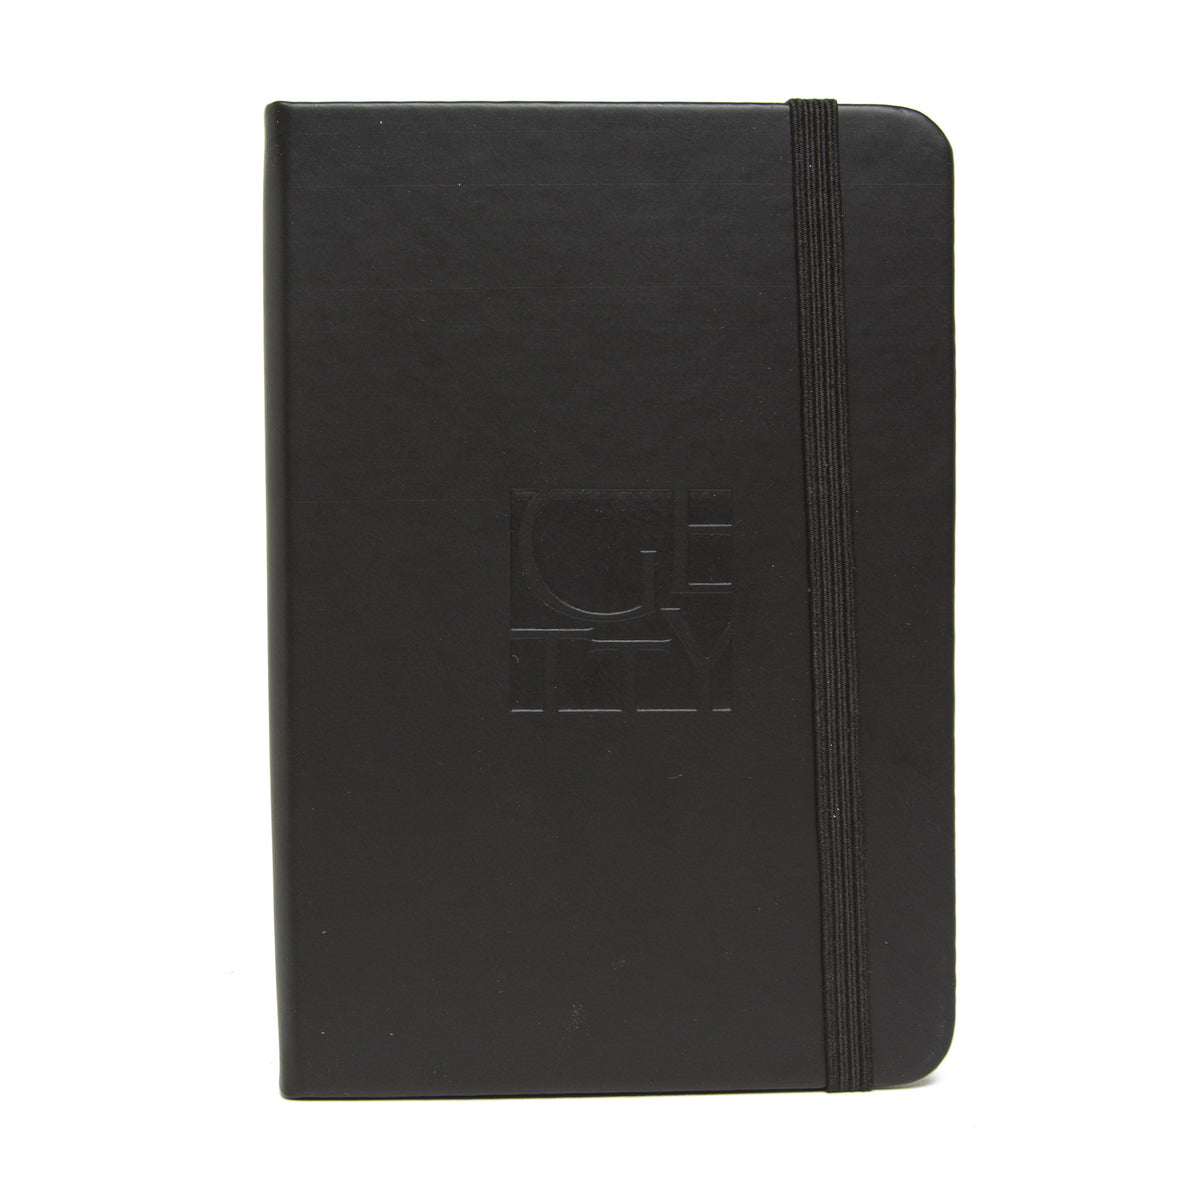 Getty Wordmark Journal-Pocket Size-Black | Getty Store